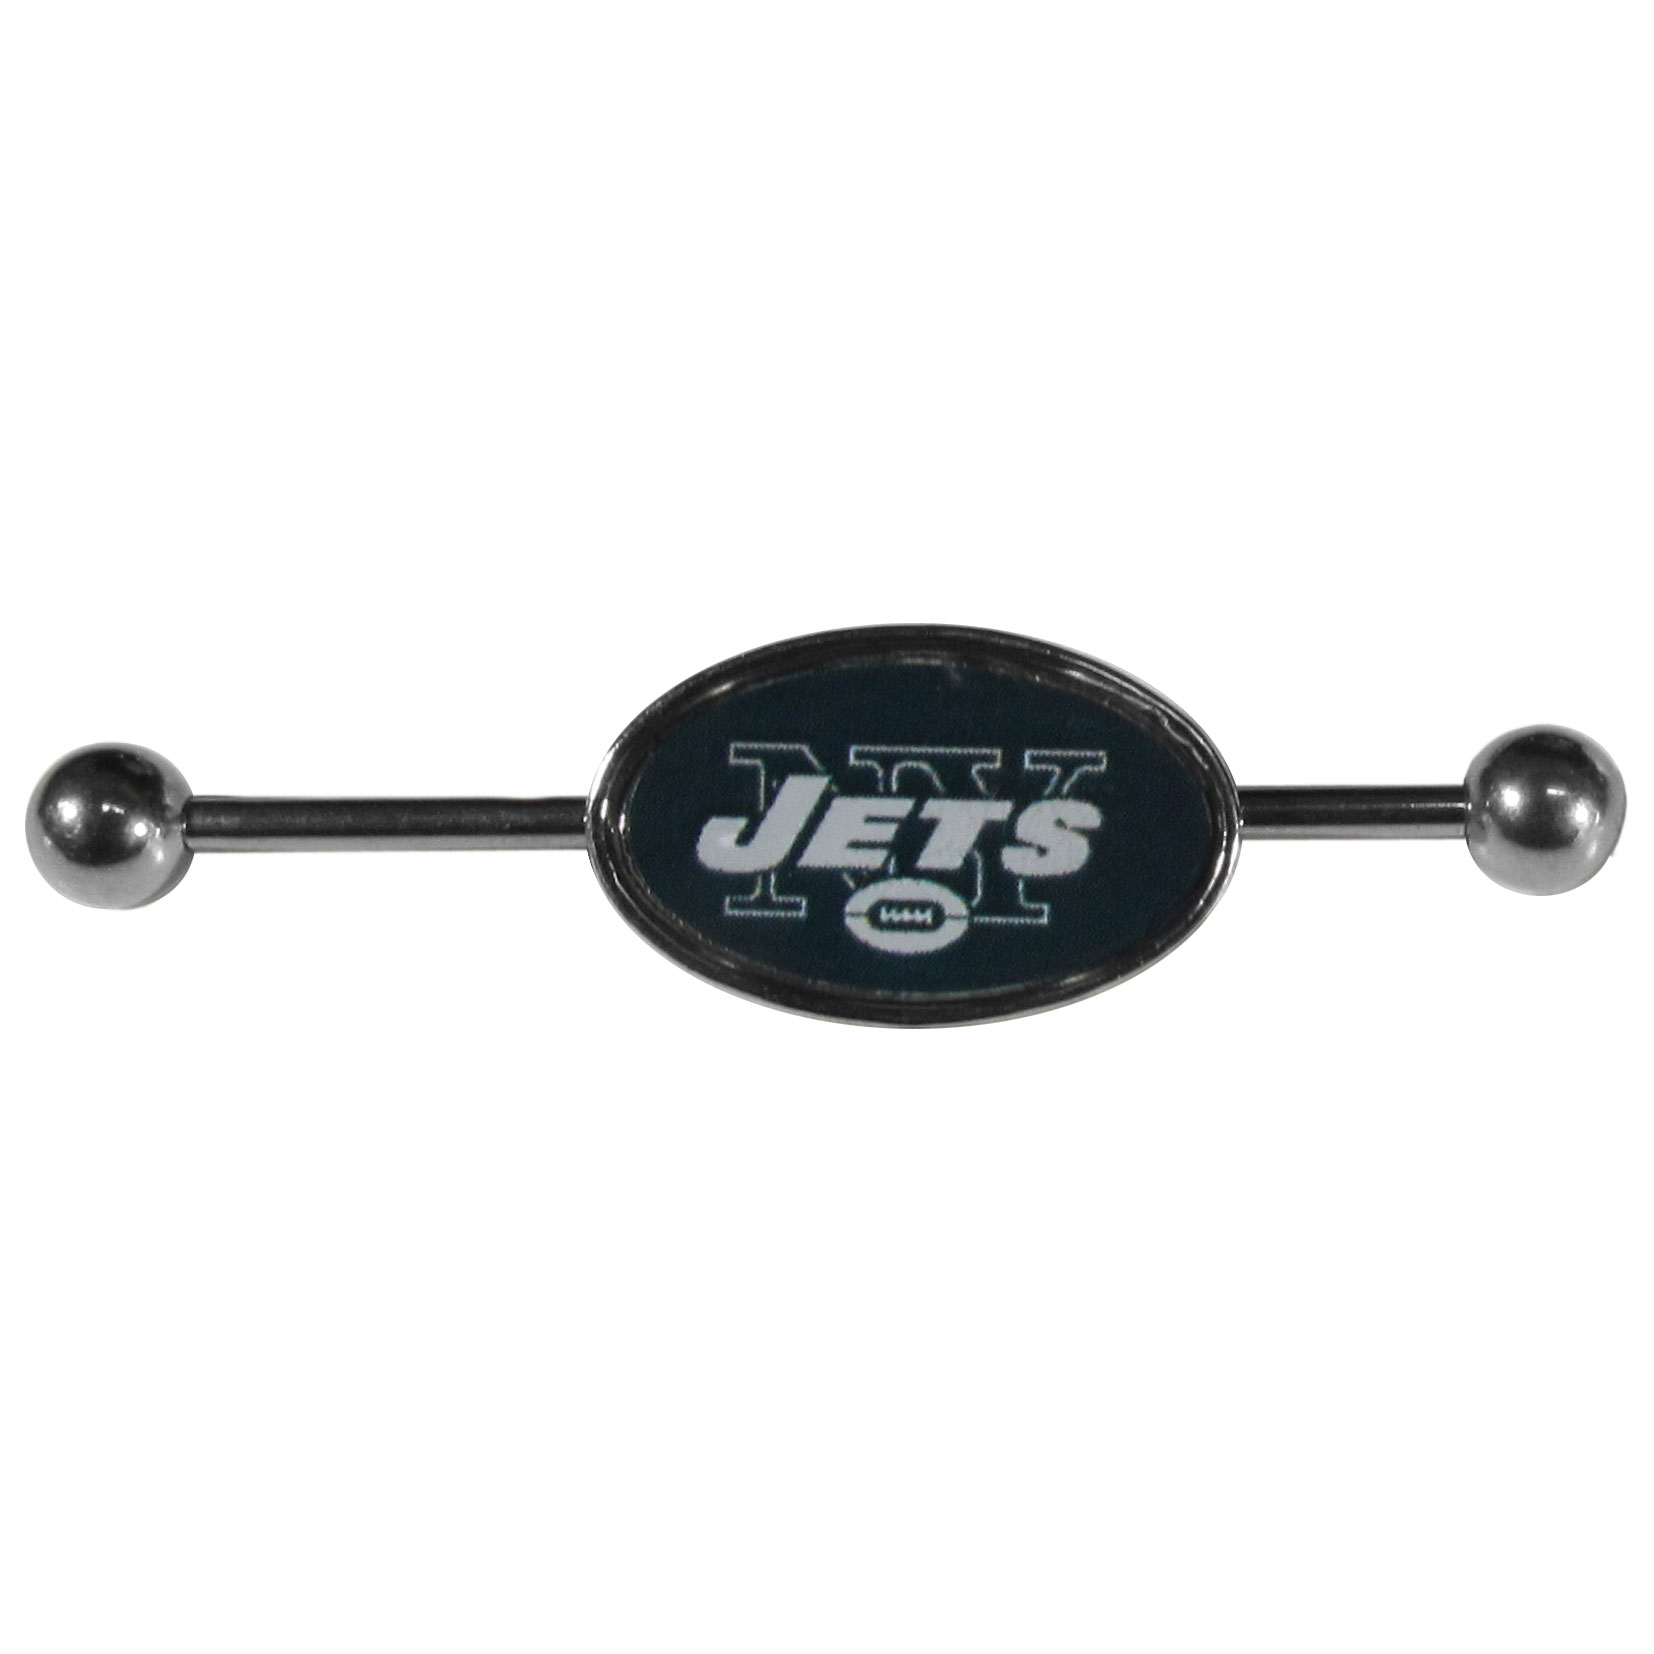 New York Jets Industrial Slider Barbell - Show off your love of the game with this officially licensed.New York Jets industrial slider barbell. The 40mm barbell features an expertly designed team slider charm